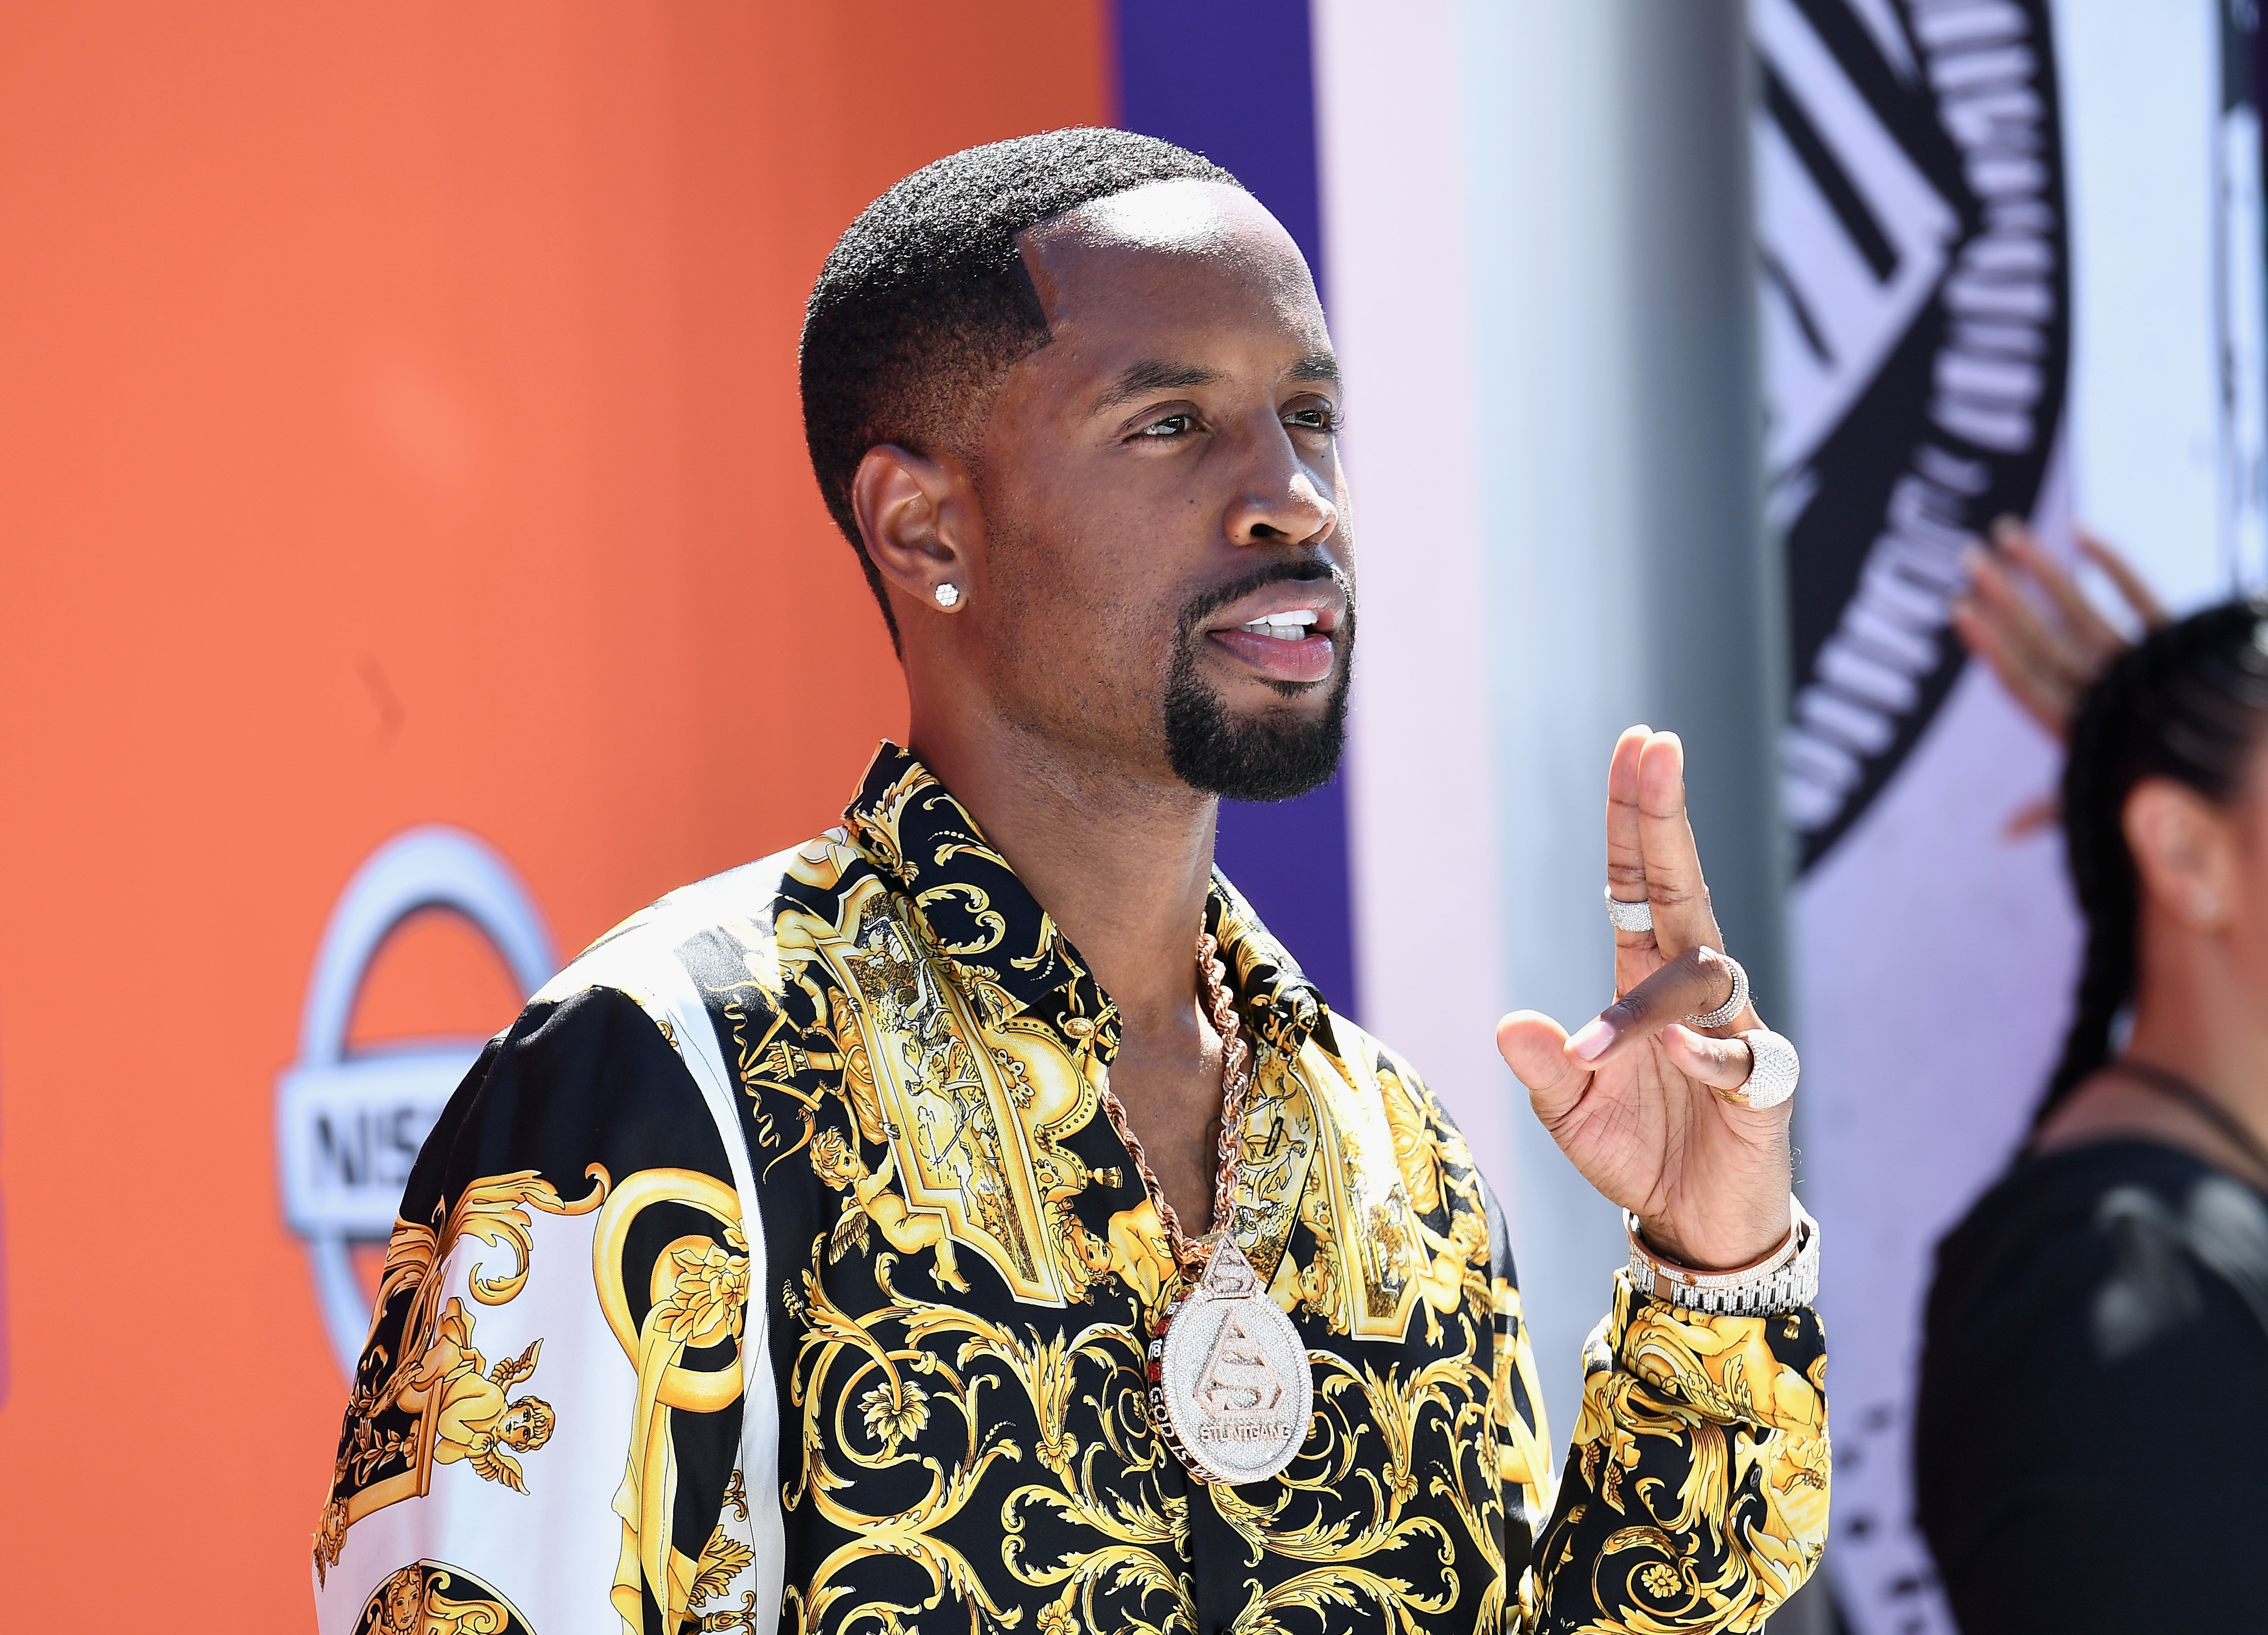 Safaree Samuels at the 2018 BET Awards red carpet. | Photo: Getty Images